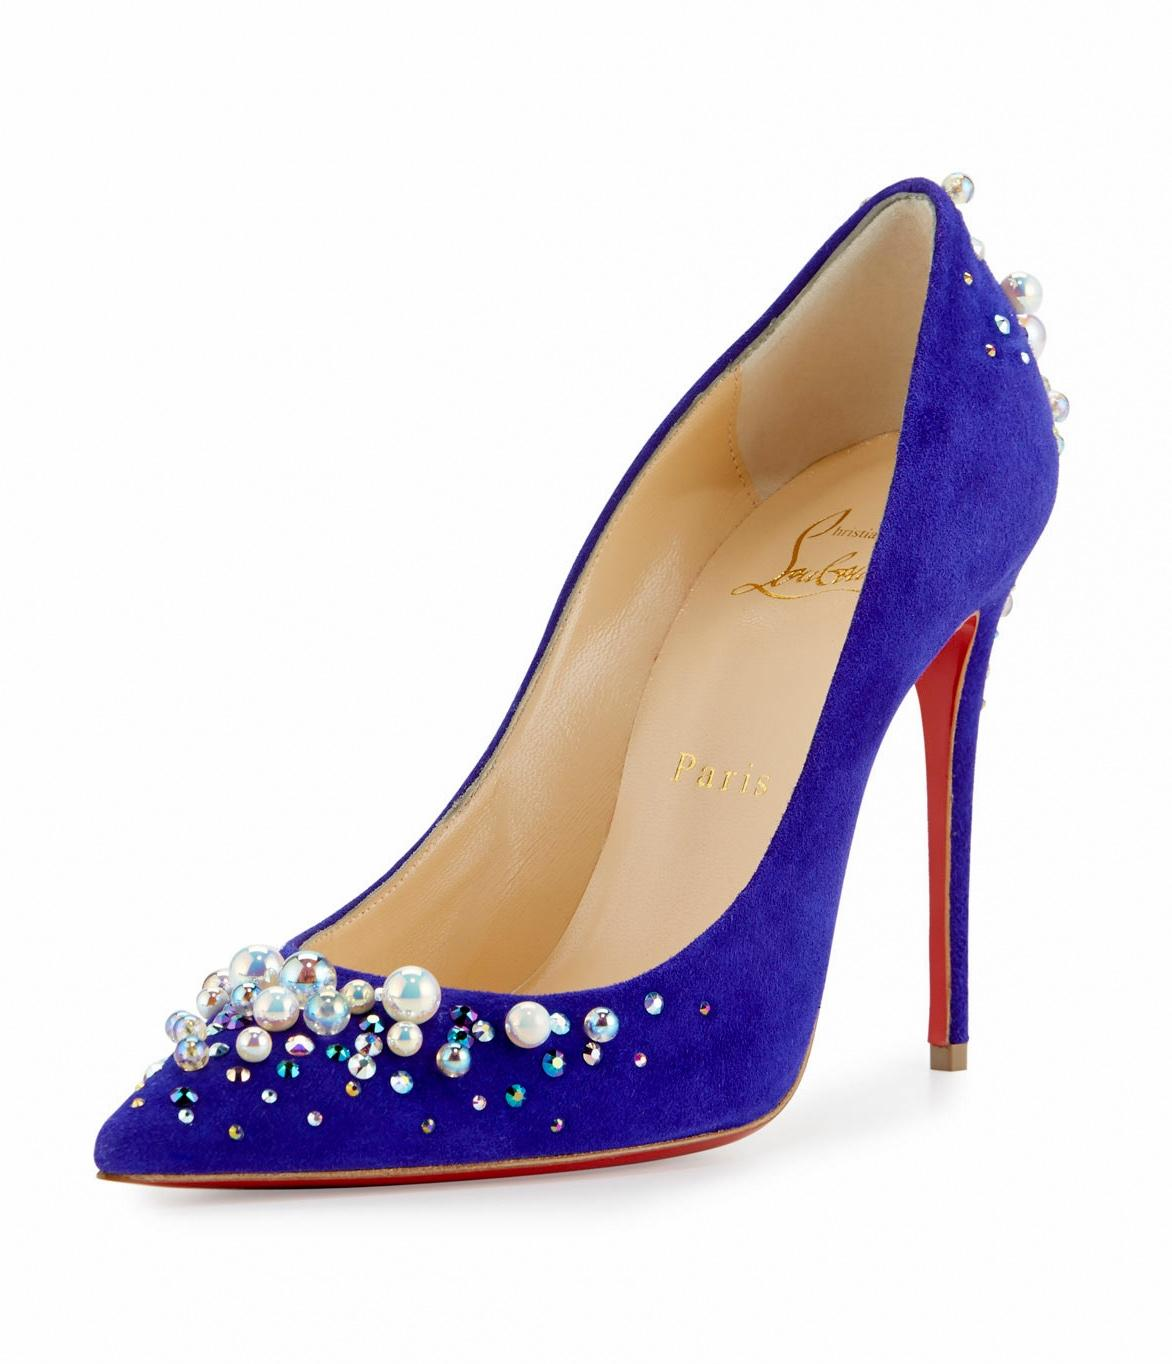 Christian Louboutin Purple Pop Candidate Pearly Embellished Suede Red Sole Pumps Size EU 38 (Approx. US 8) Regular (M, B)